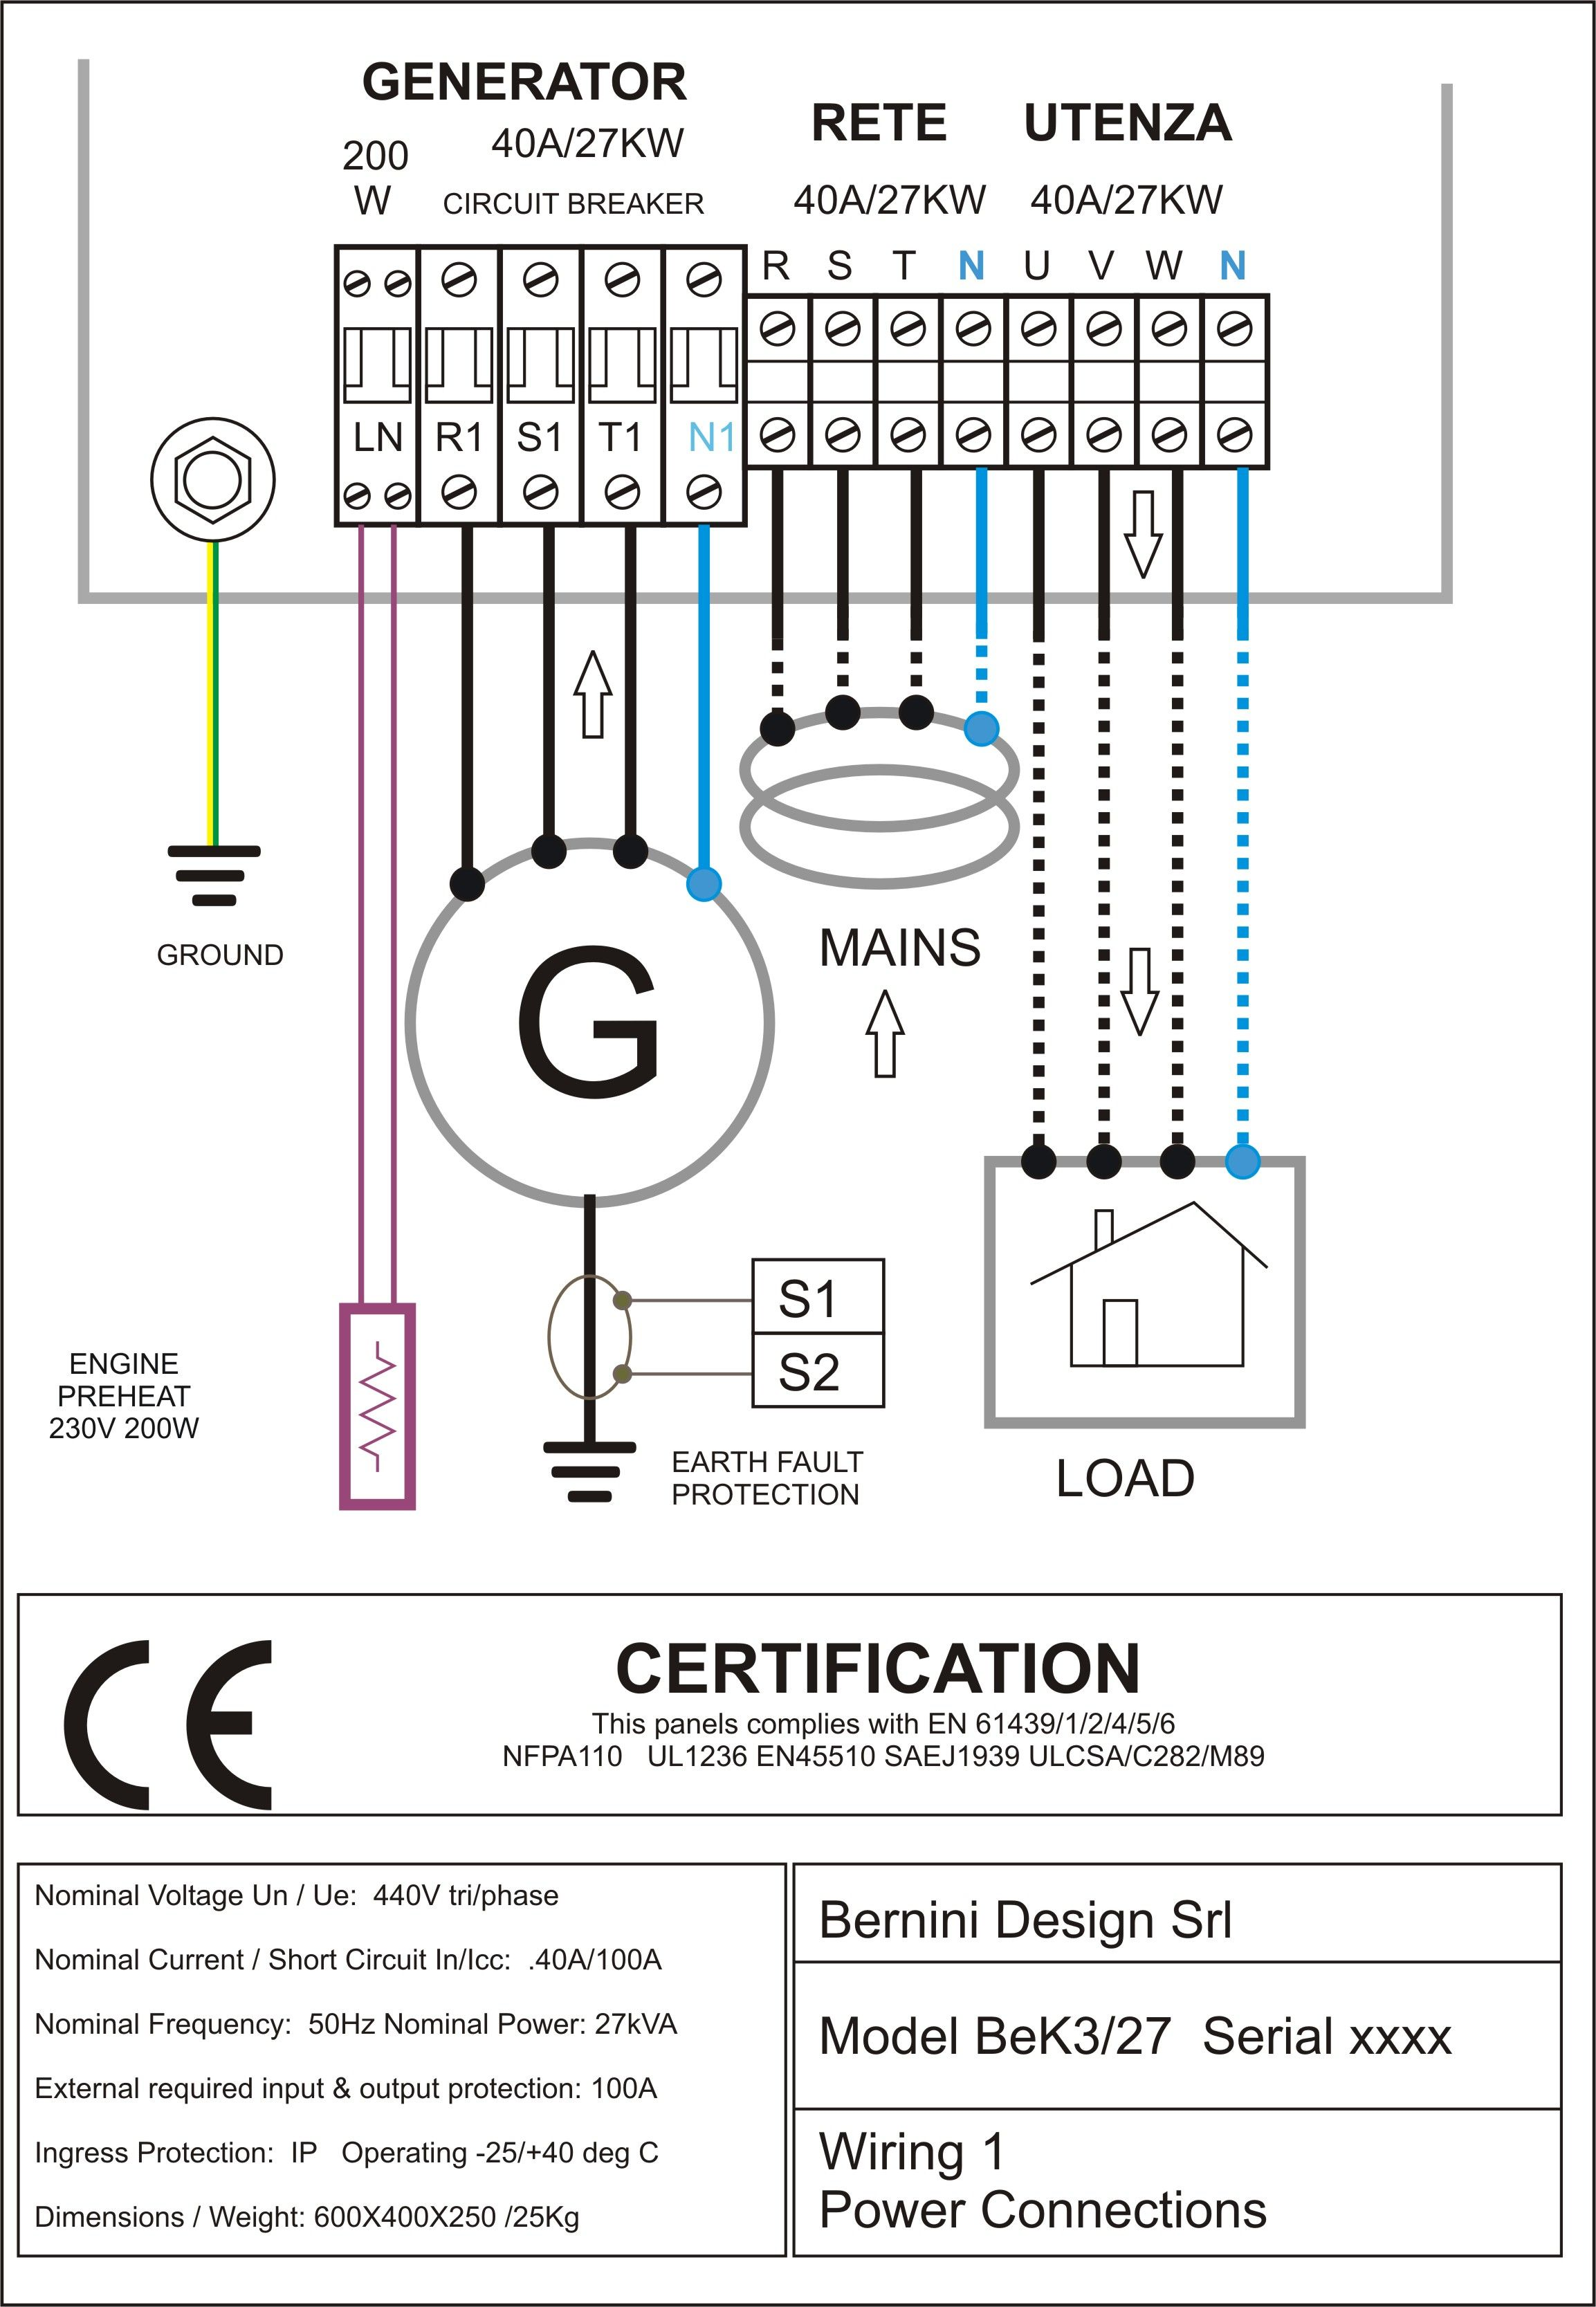 e789bca93f9142d48250ddc66668a81d generator wiring diagrams on generator download wirning diagrams access 4000 control panel wiring diagram at mifinder.co